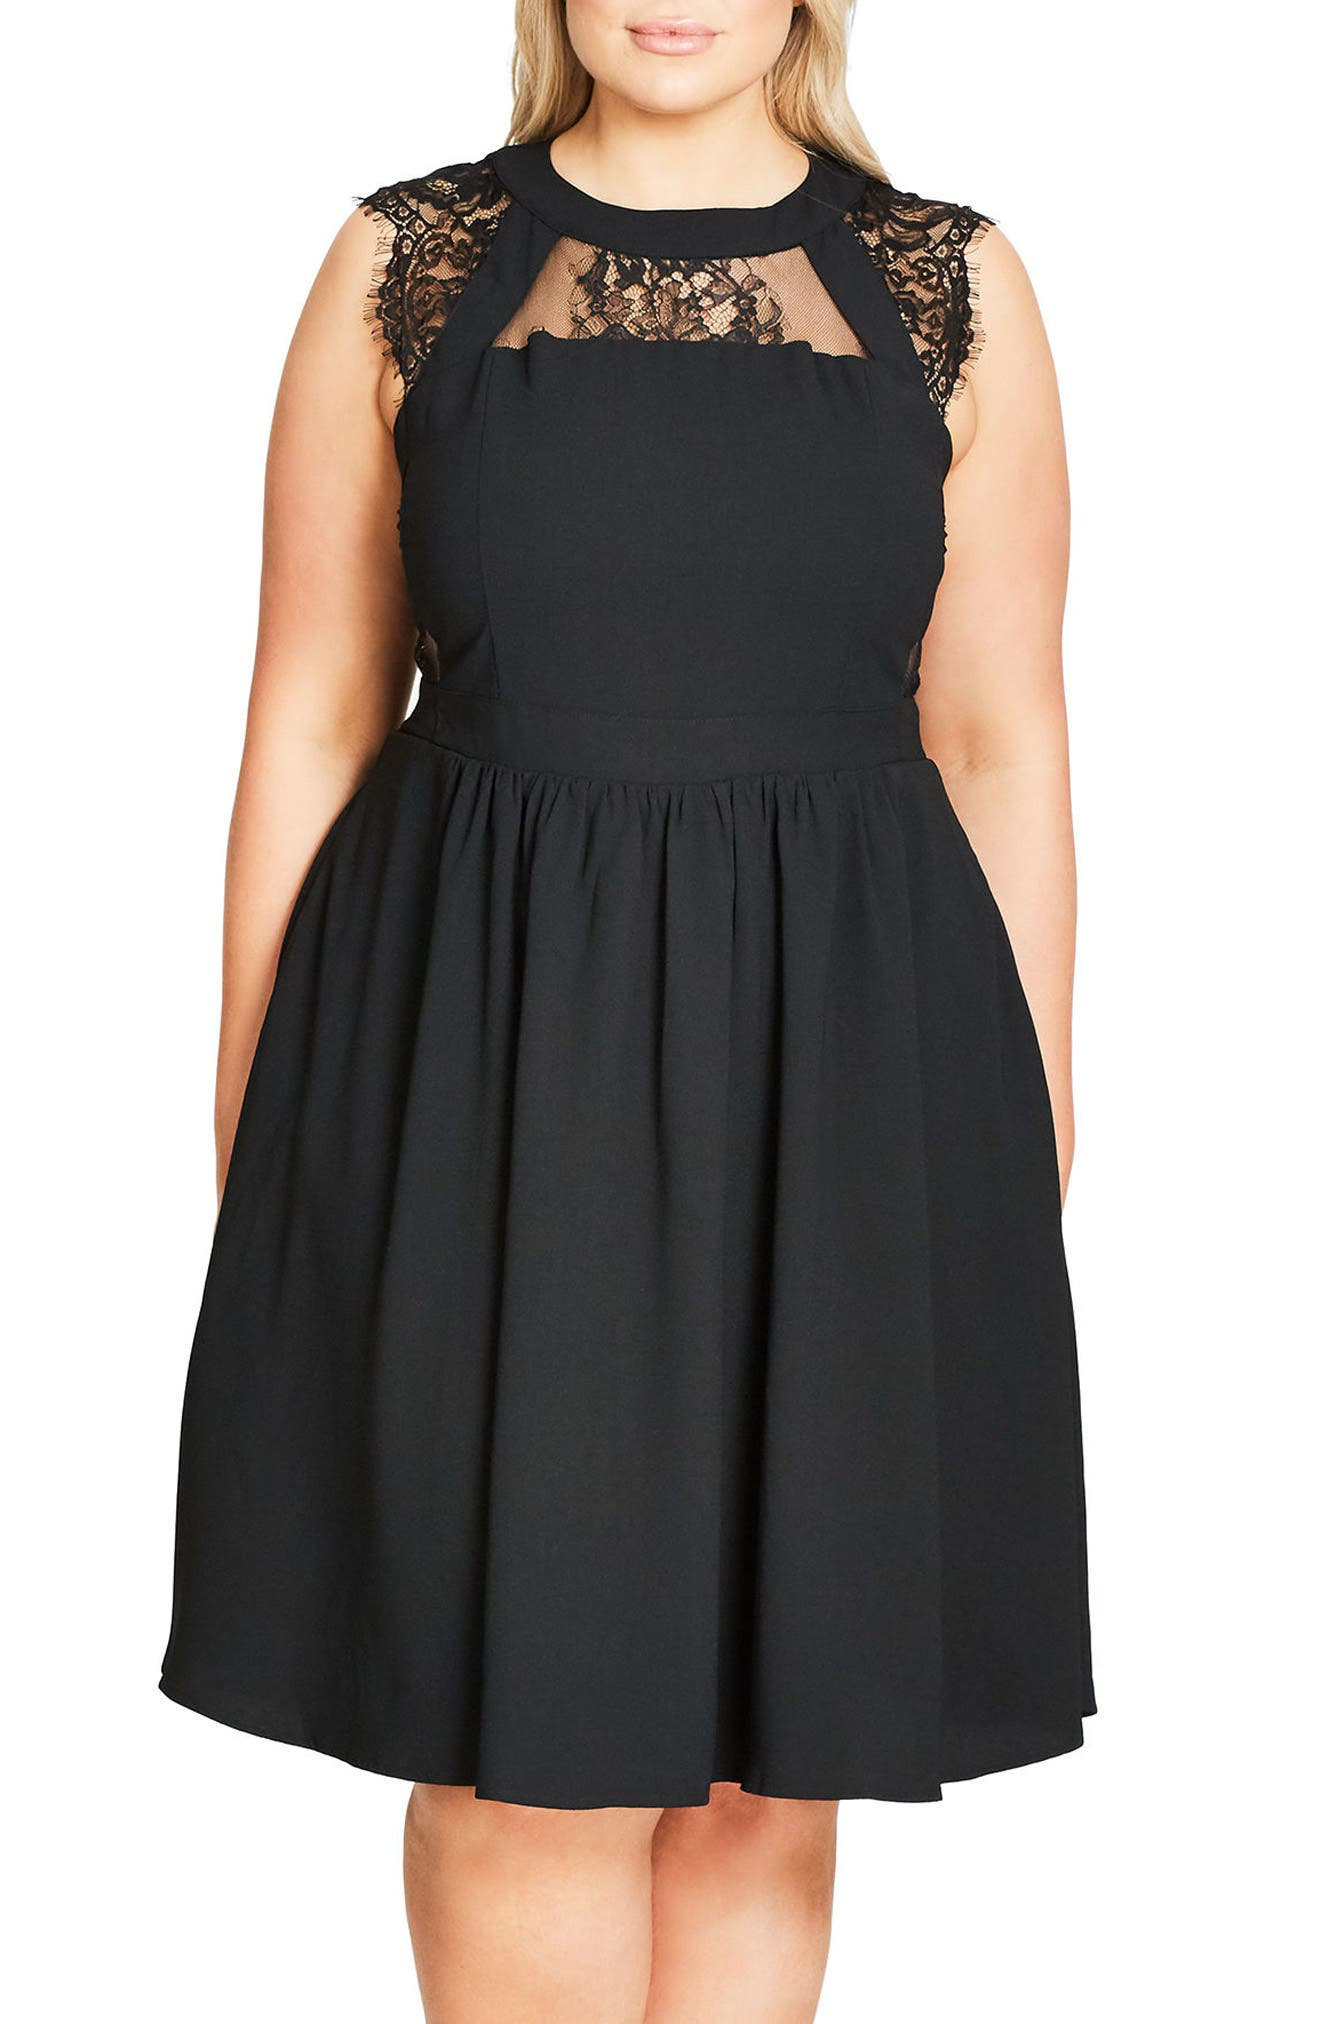 Cage Dress,                         Main,                         color, 001